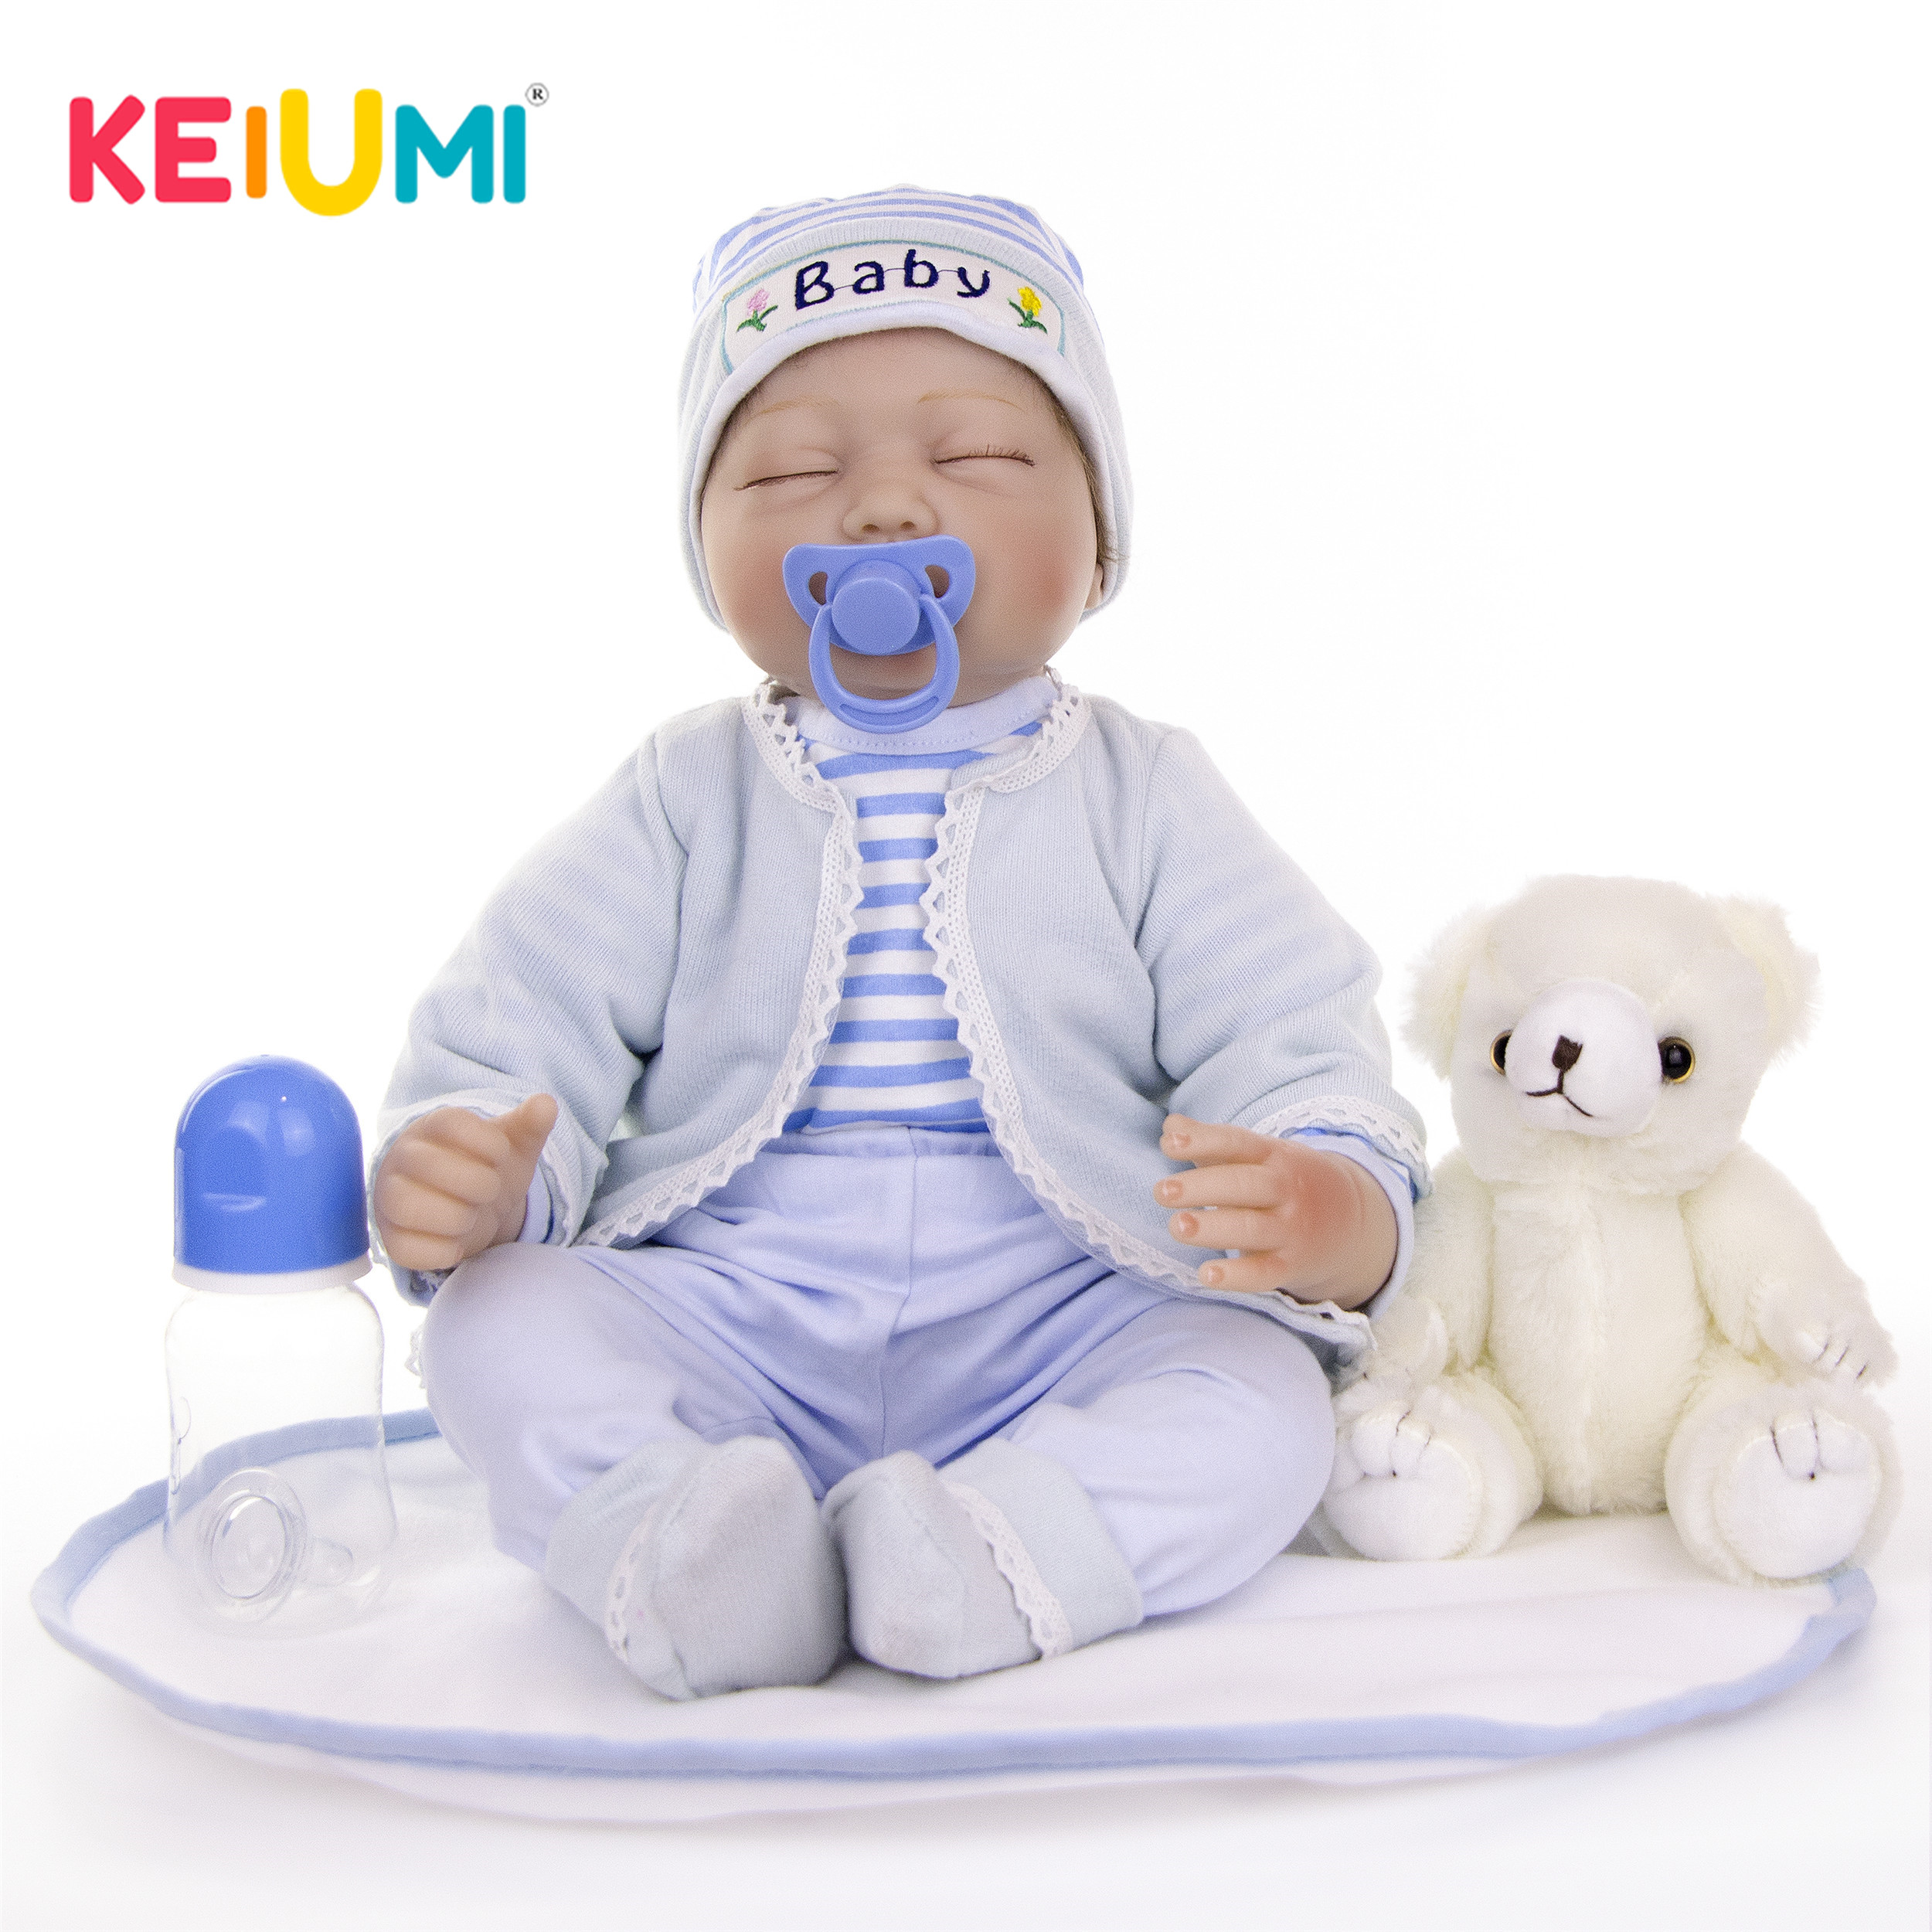 22 Inch Silicone Soft Reborn Baby Boy Doll Lifelike Closed Eyes Dolls Babies Alive Toy Toddler Birthday Gift Bedtime Playmate Dolls Aliexpress